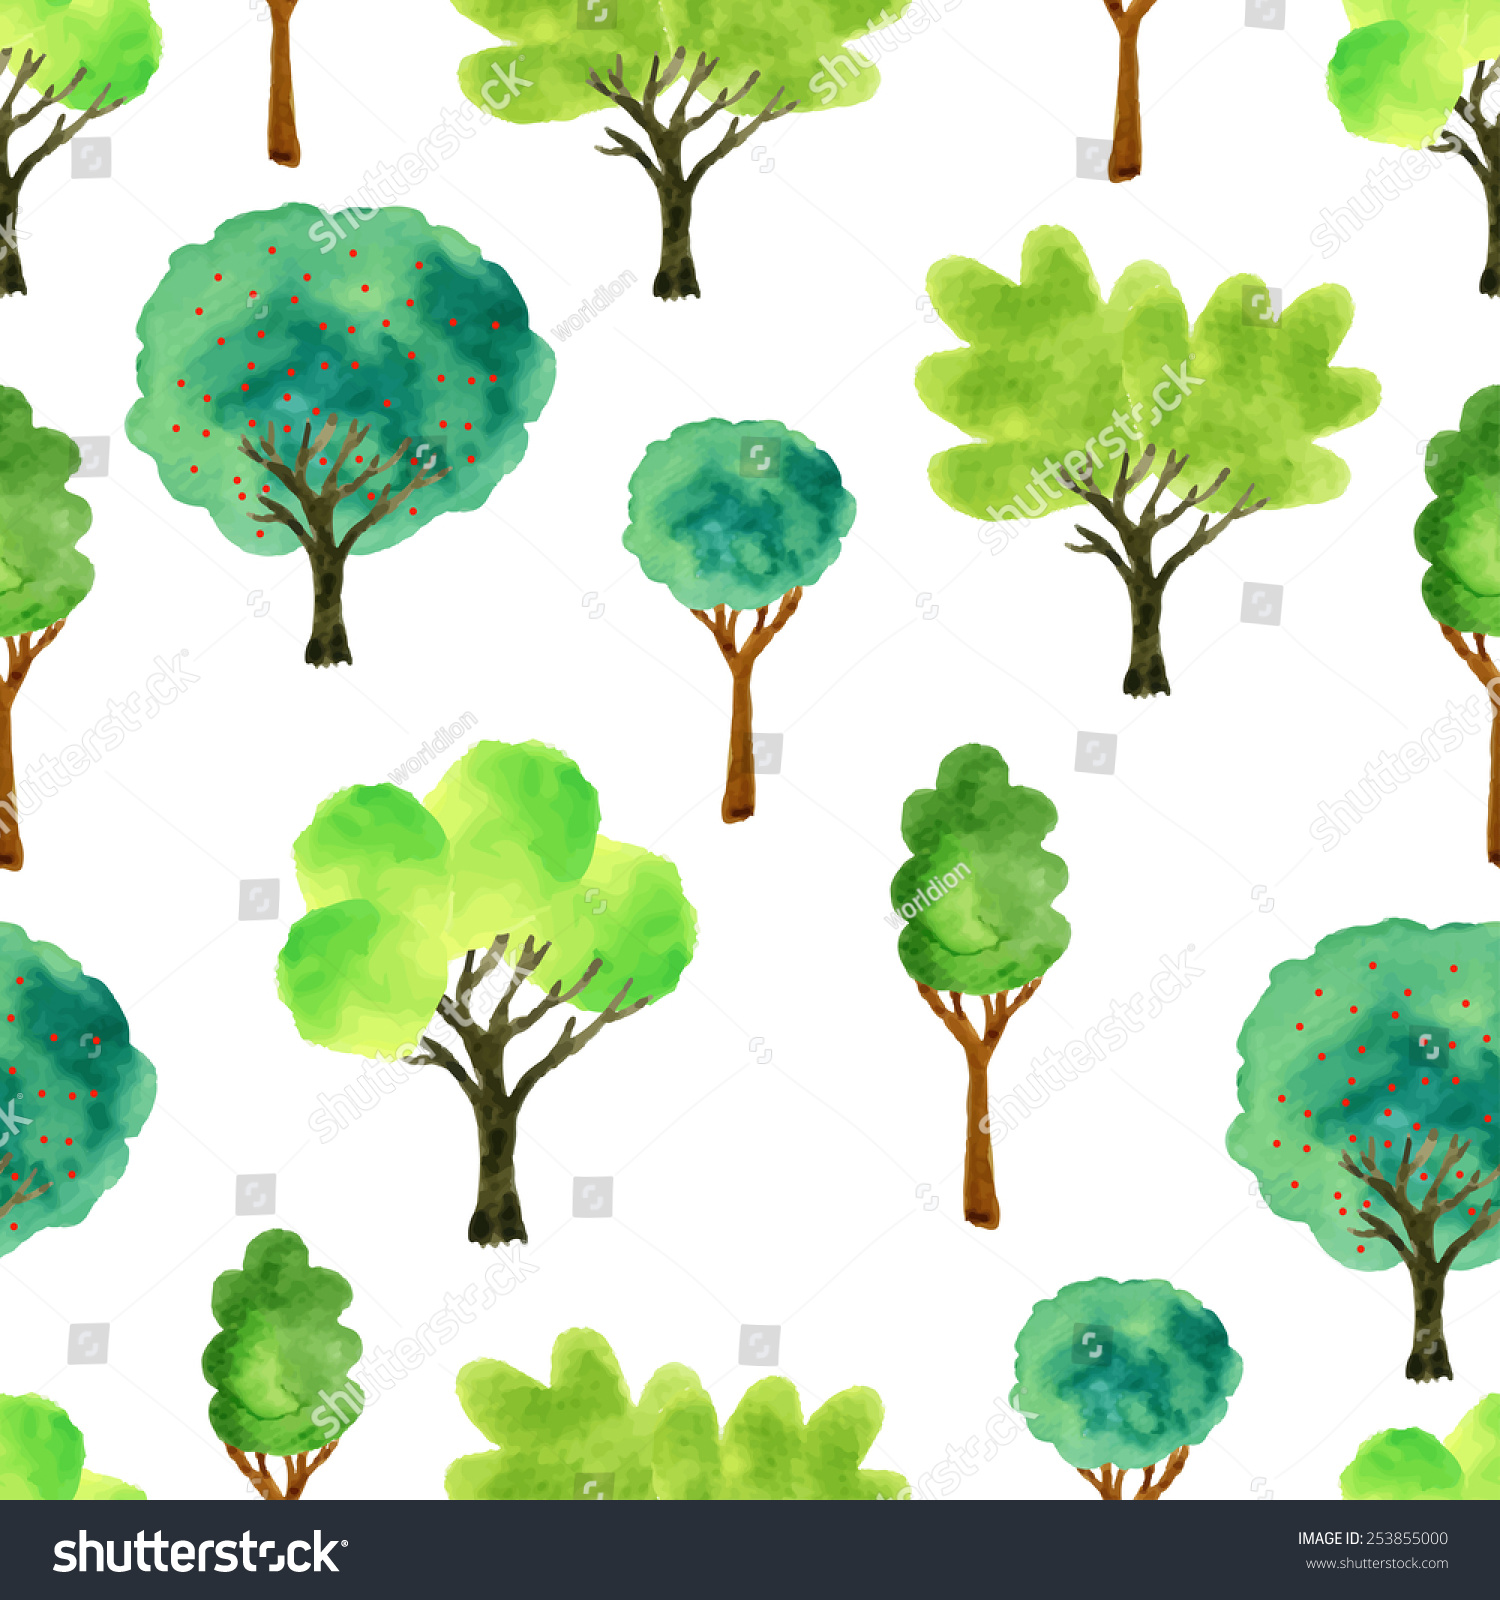 Fabric tree pattern - Cute Watercolor Tree Spring Seamless Pattern Vector Illustration For Fabric Paper And Other